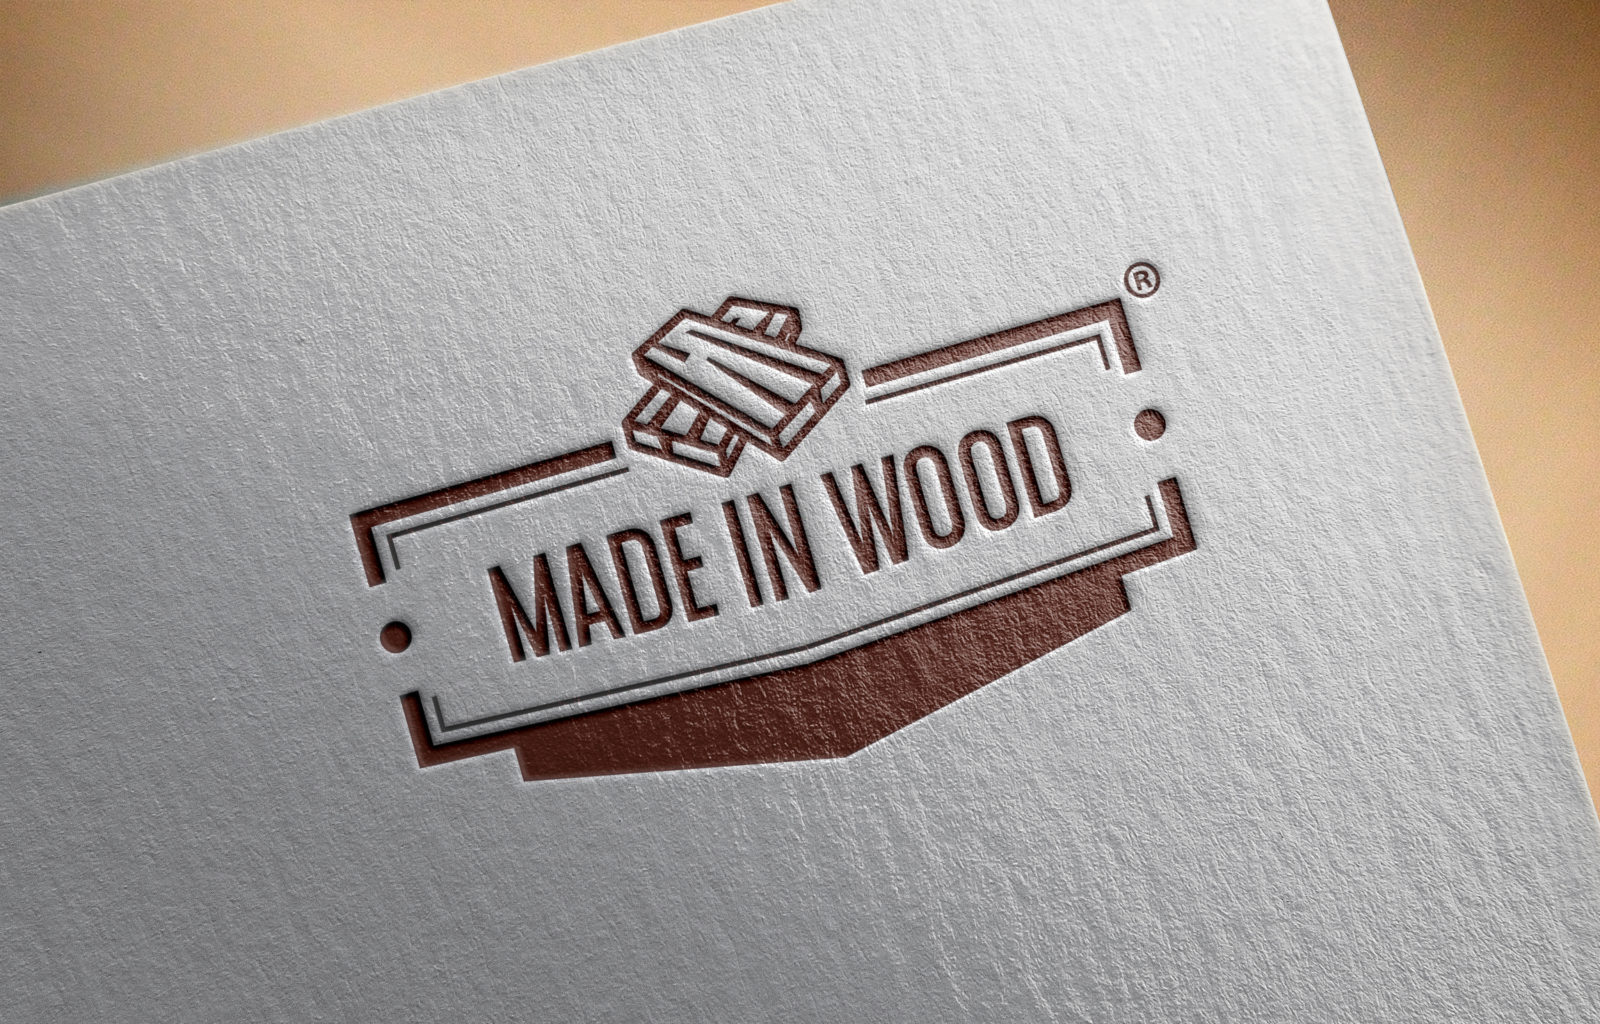 Made in wood